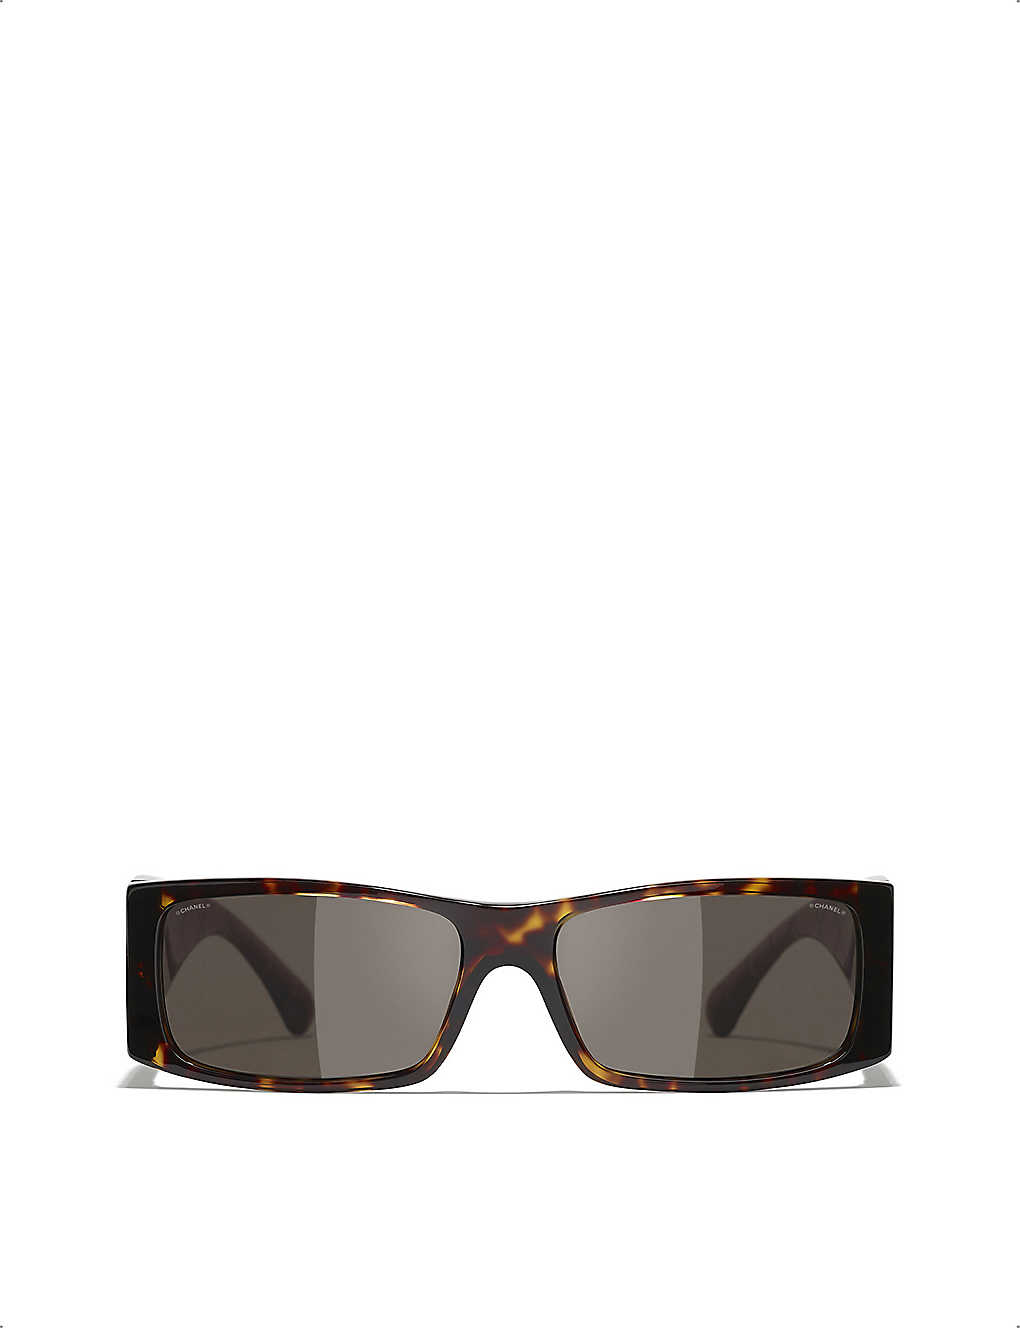 CHANEL: CH5425 square-frame acetate sunglasses